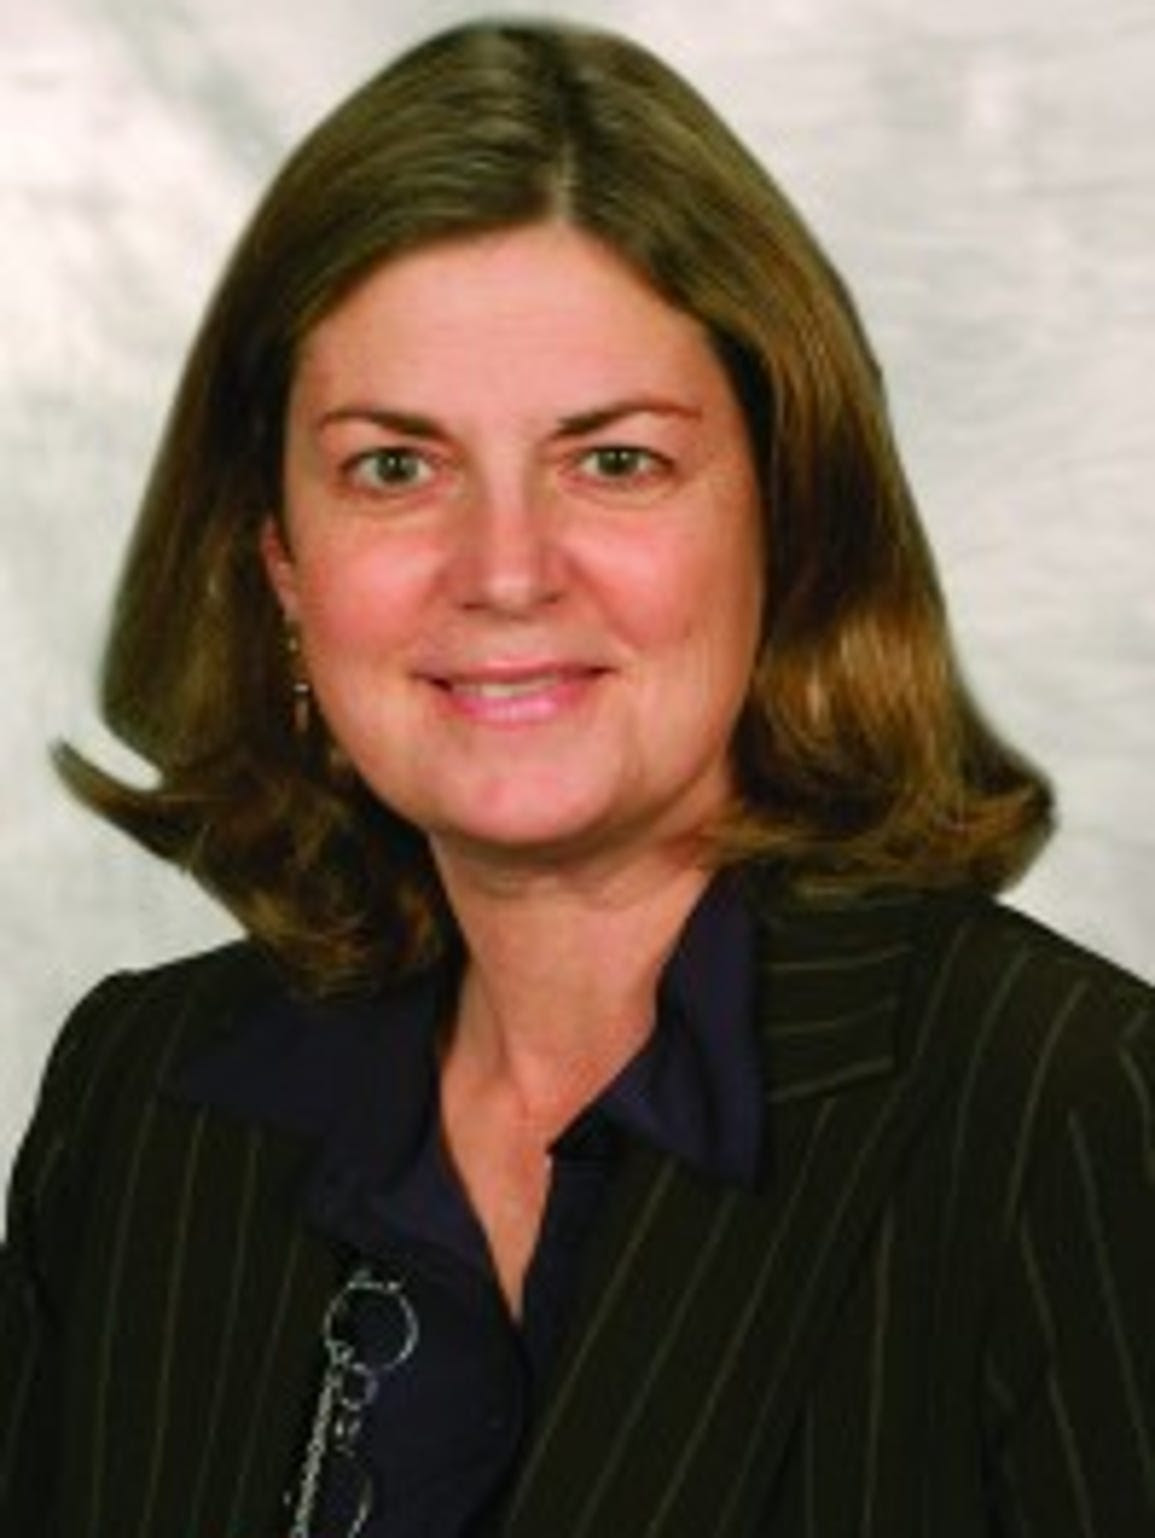 A. Kimberley Dayton, Minnesota law professor and guardianship